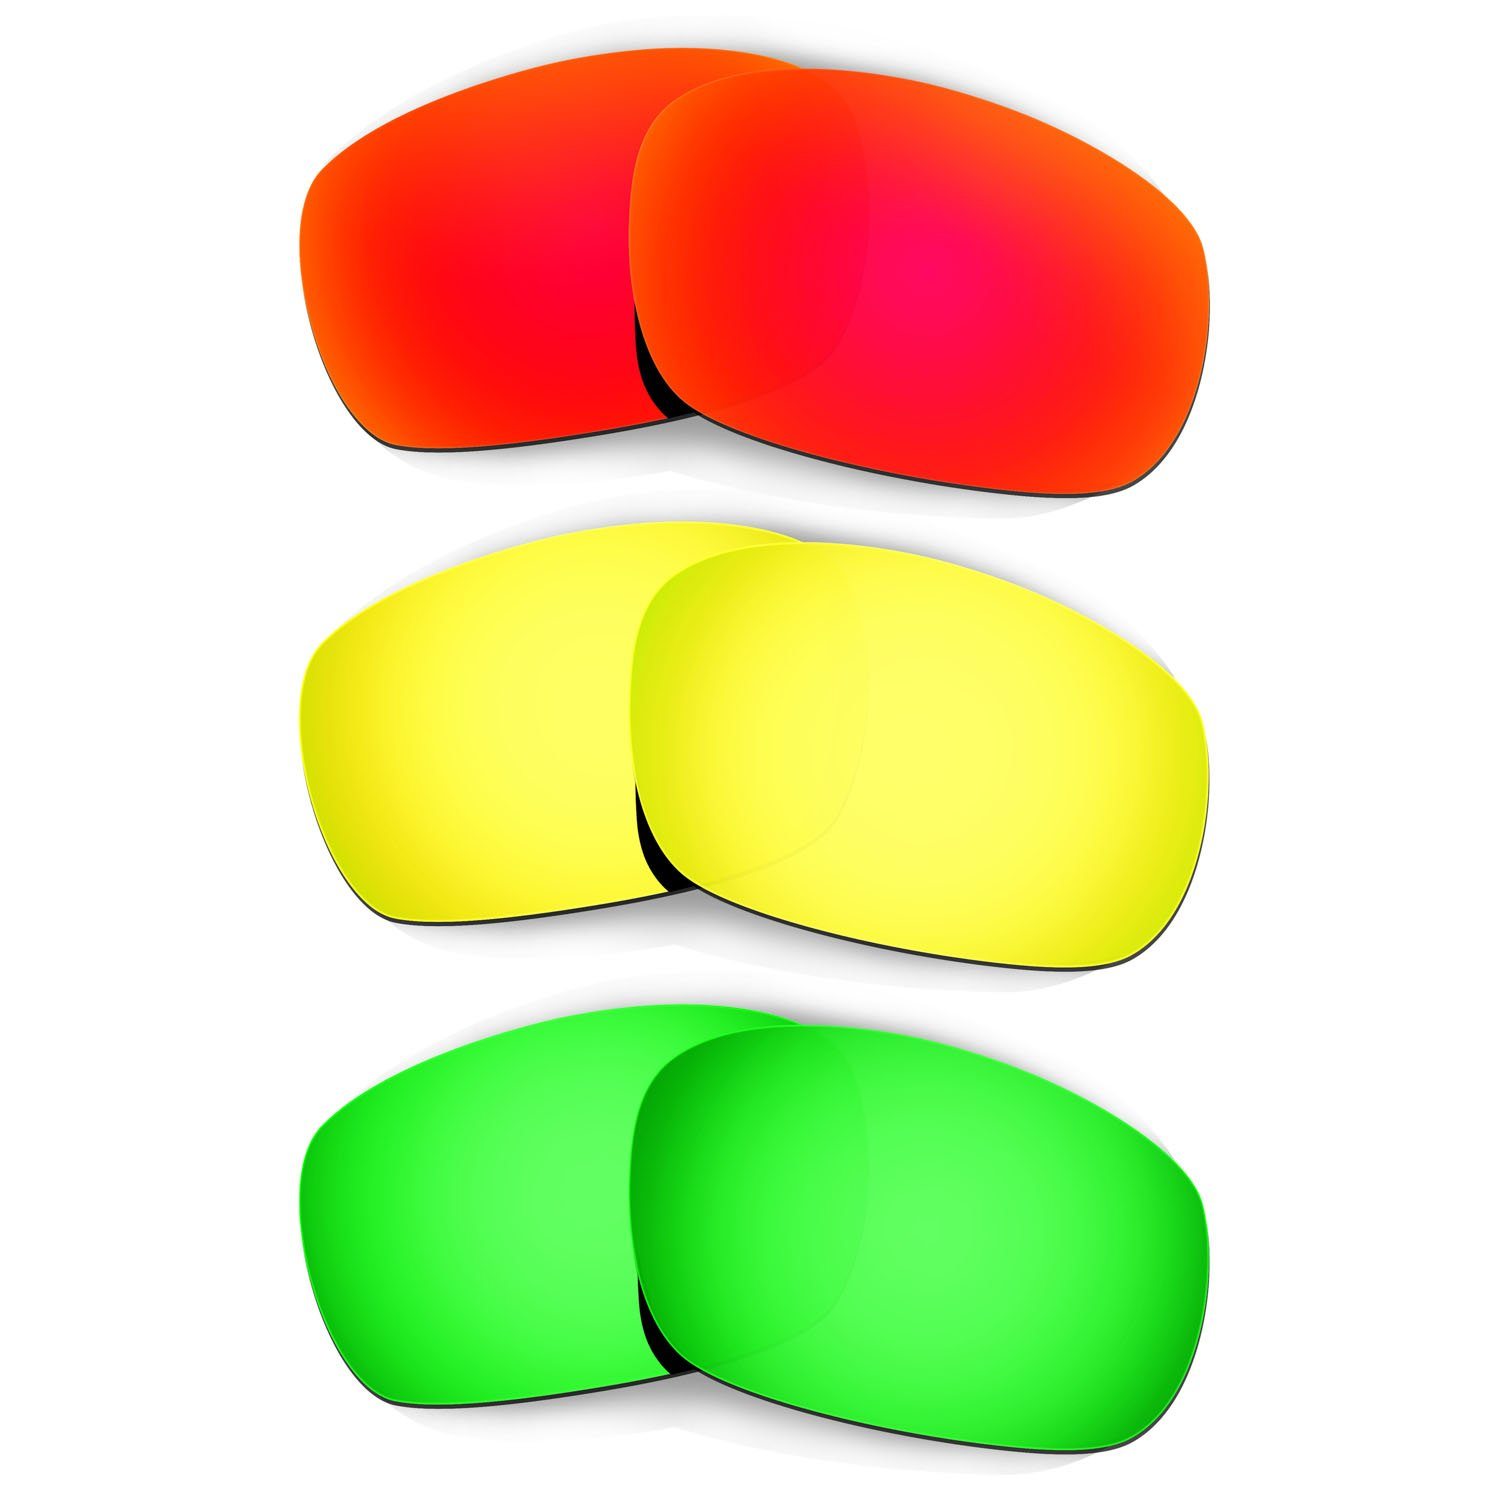 Hkuco Plus Mens Replacement Lenses For Oakley Jawbone Red/24K Gold/Emerald Green Sunglasses